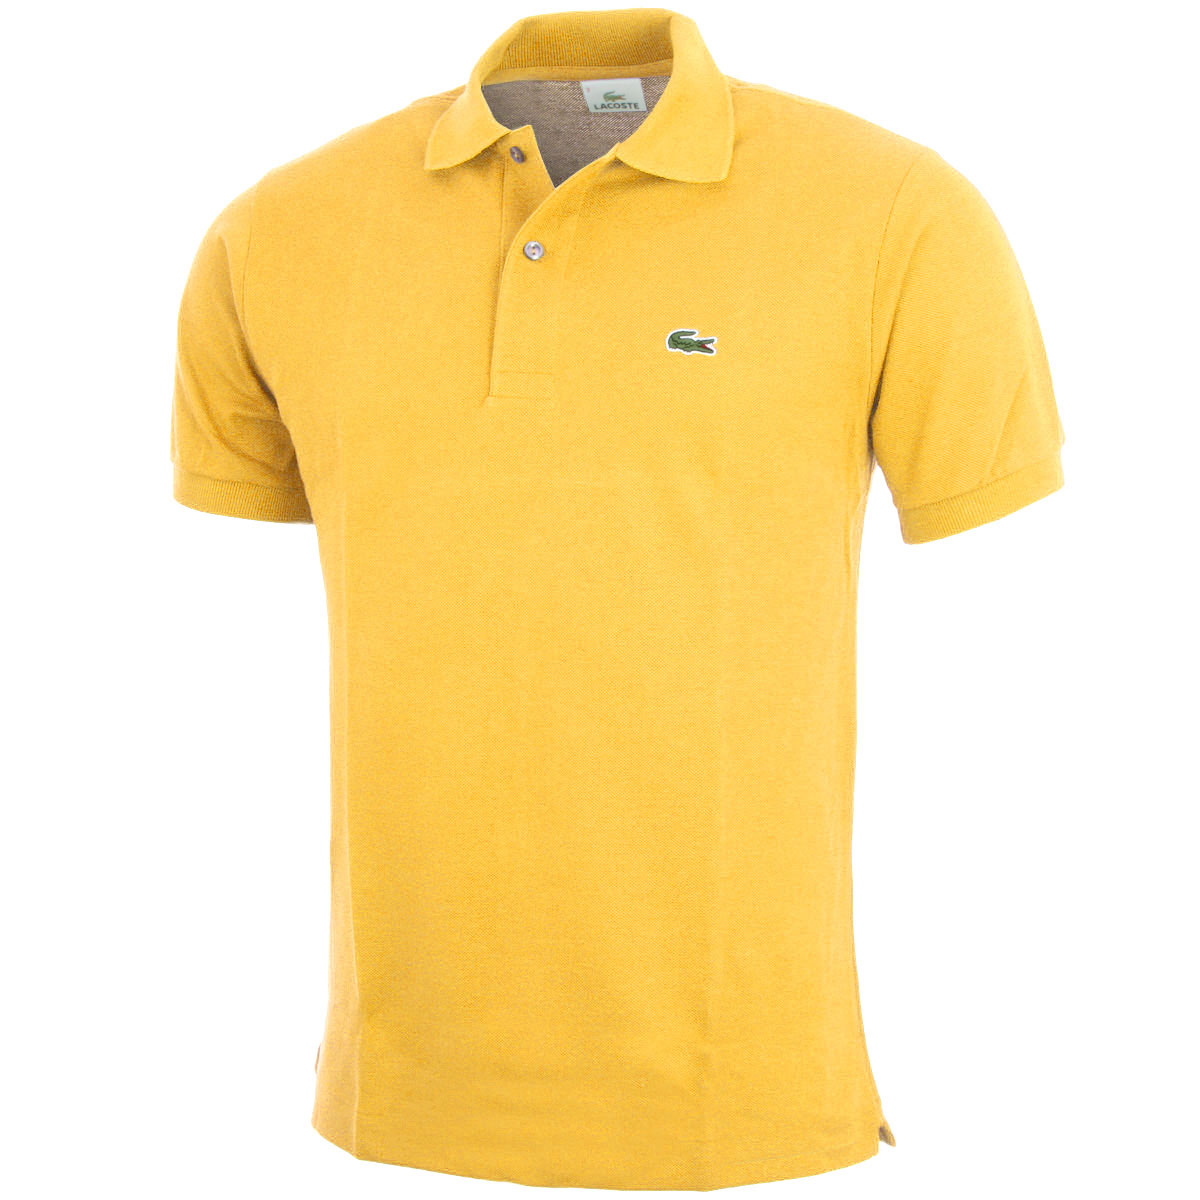 27 off rrp lacoste mens classic cotton l1212 short sleeve for Lacoste polo shirts ebay